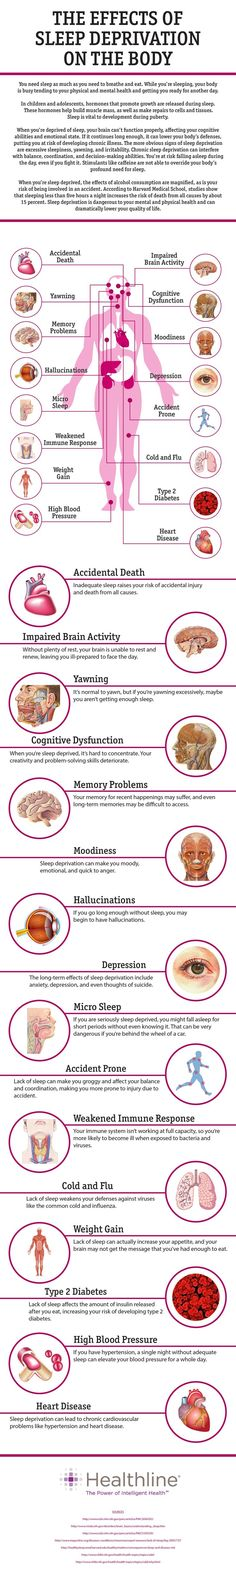 The Effects of Sleep Deprivation on the Body=> http://www.healthline.com/health/sleep-deprivation/effects-on-body #sleep #healthysleep #VRMPainPro  #painmanagement